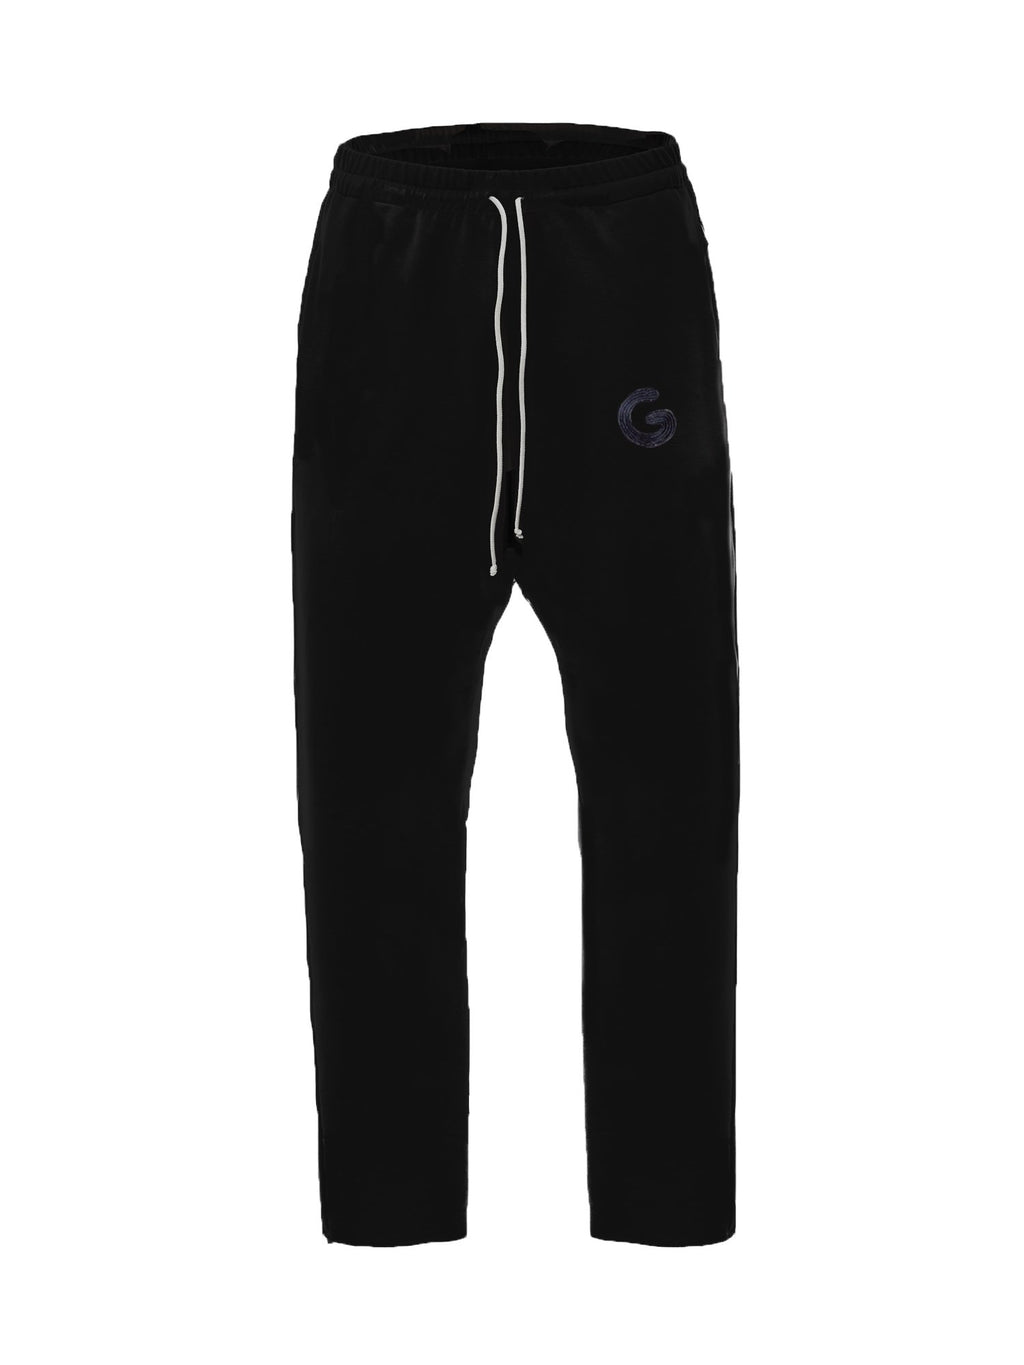 TheG Essential Joggers // black